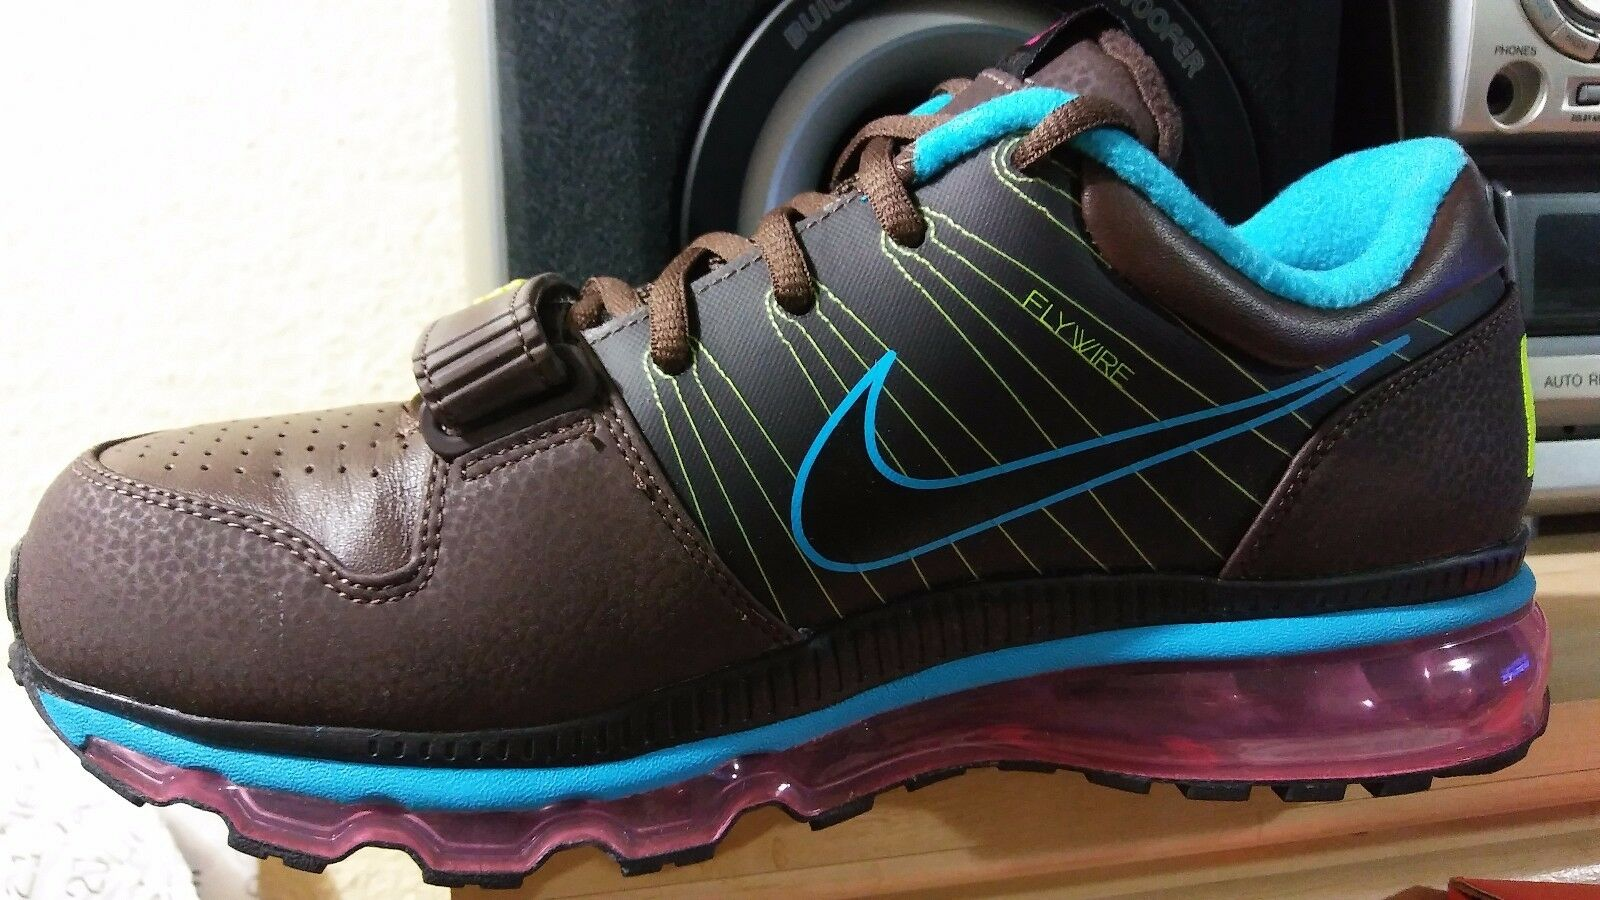 nike air mens max 360 aus niedrigen mens air sz 8,5 brown / blue-pink nwb cb8dbd